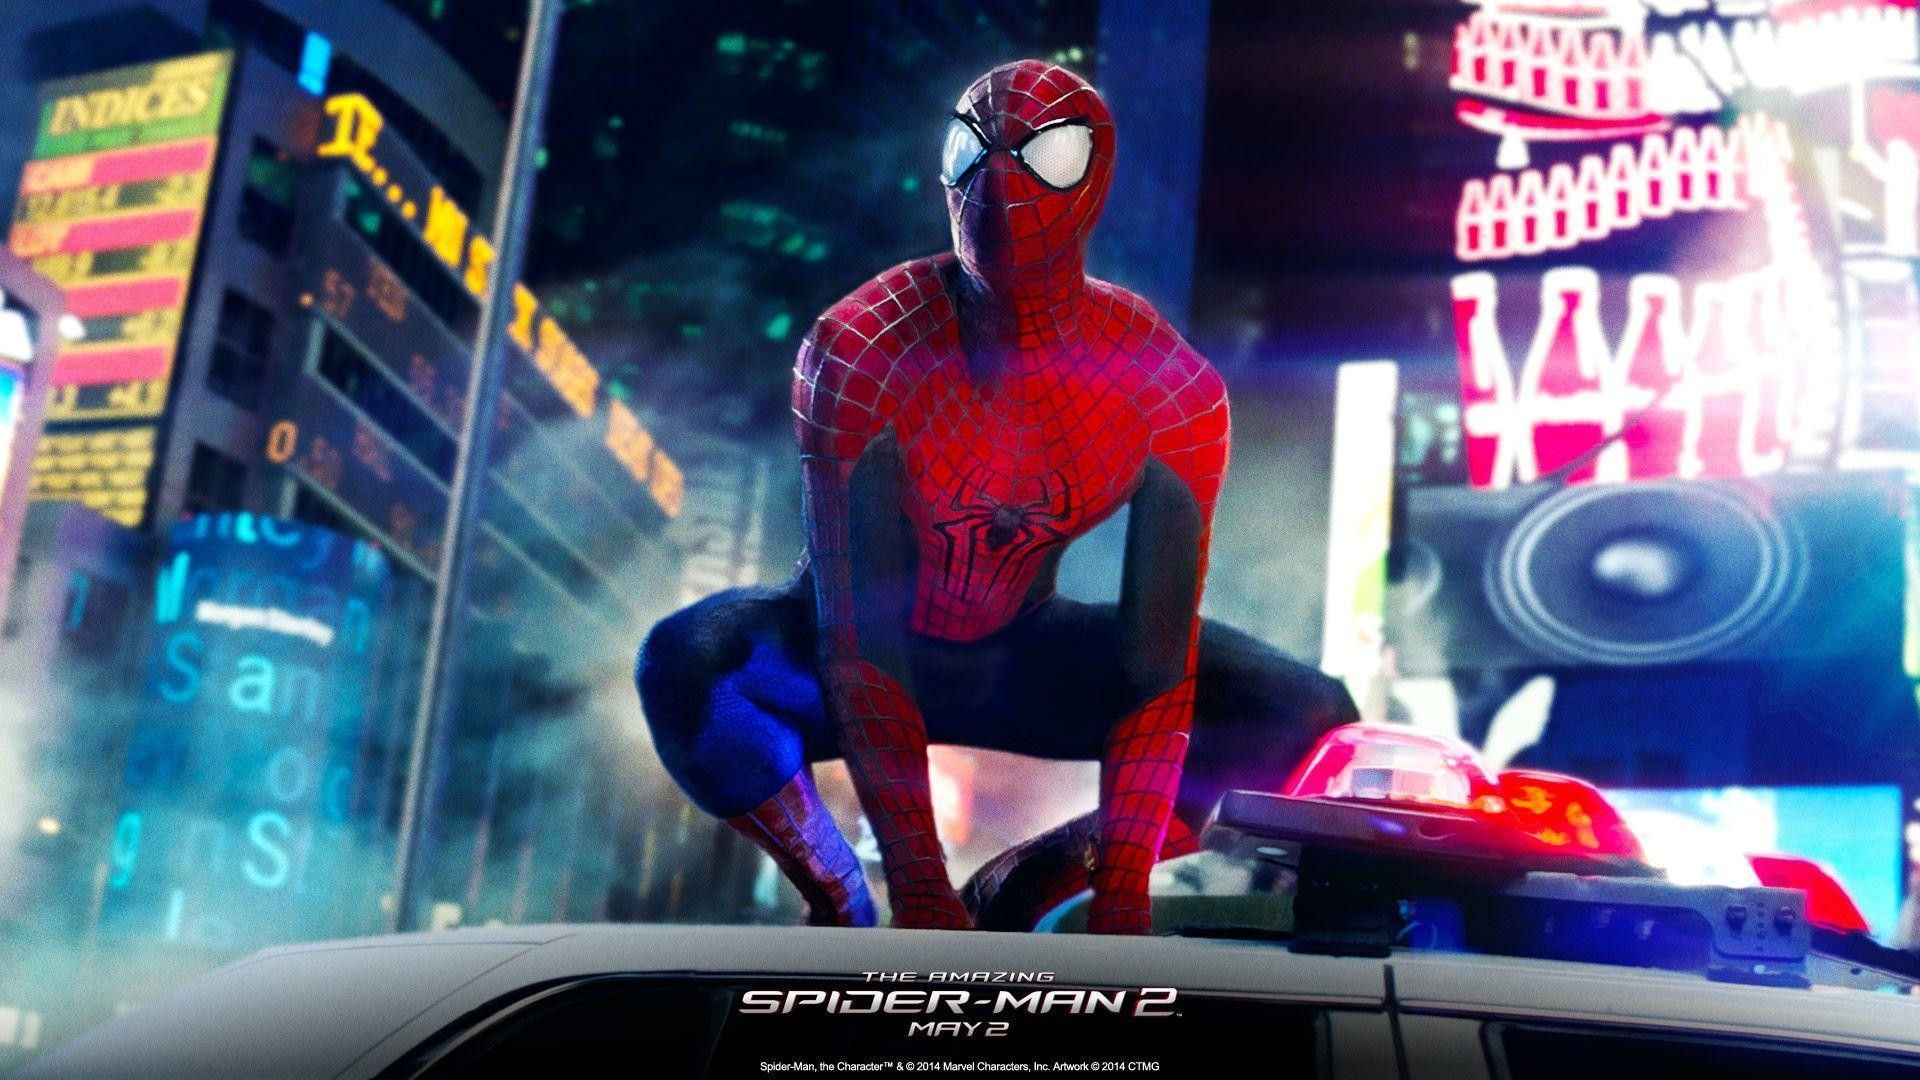 1920x1080 44 The Amazing Spider-Man 2 HD Wallpapers | Backgrounds .